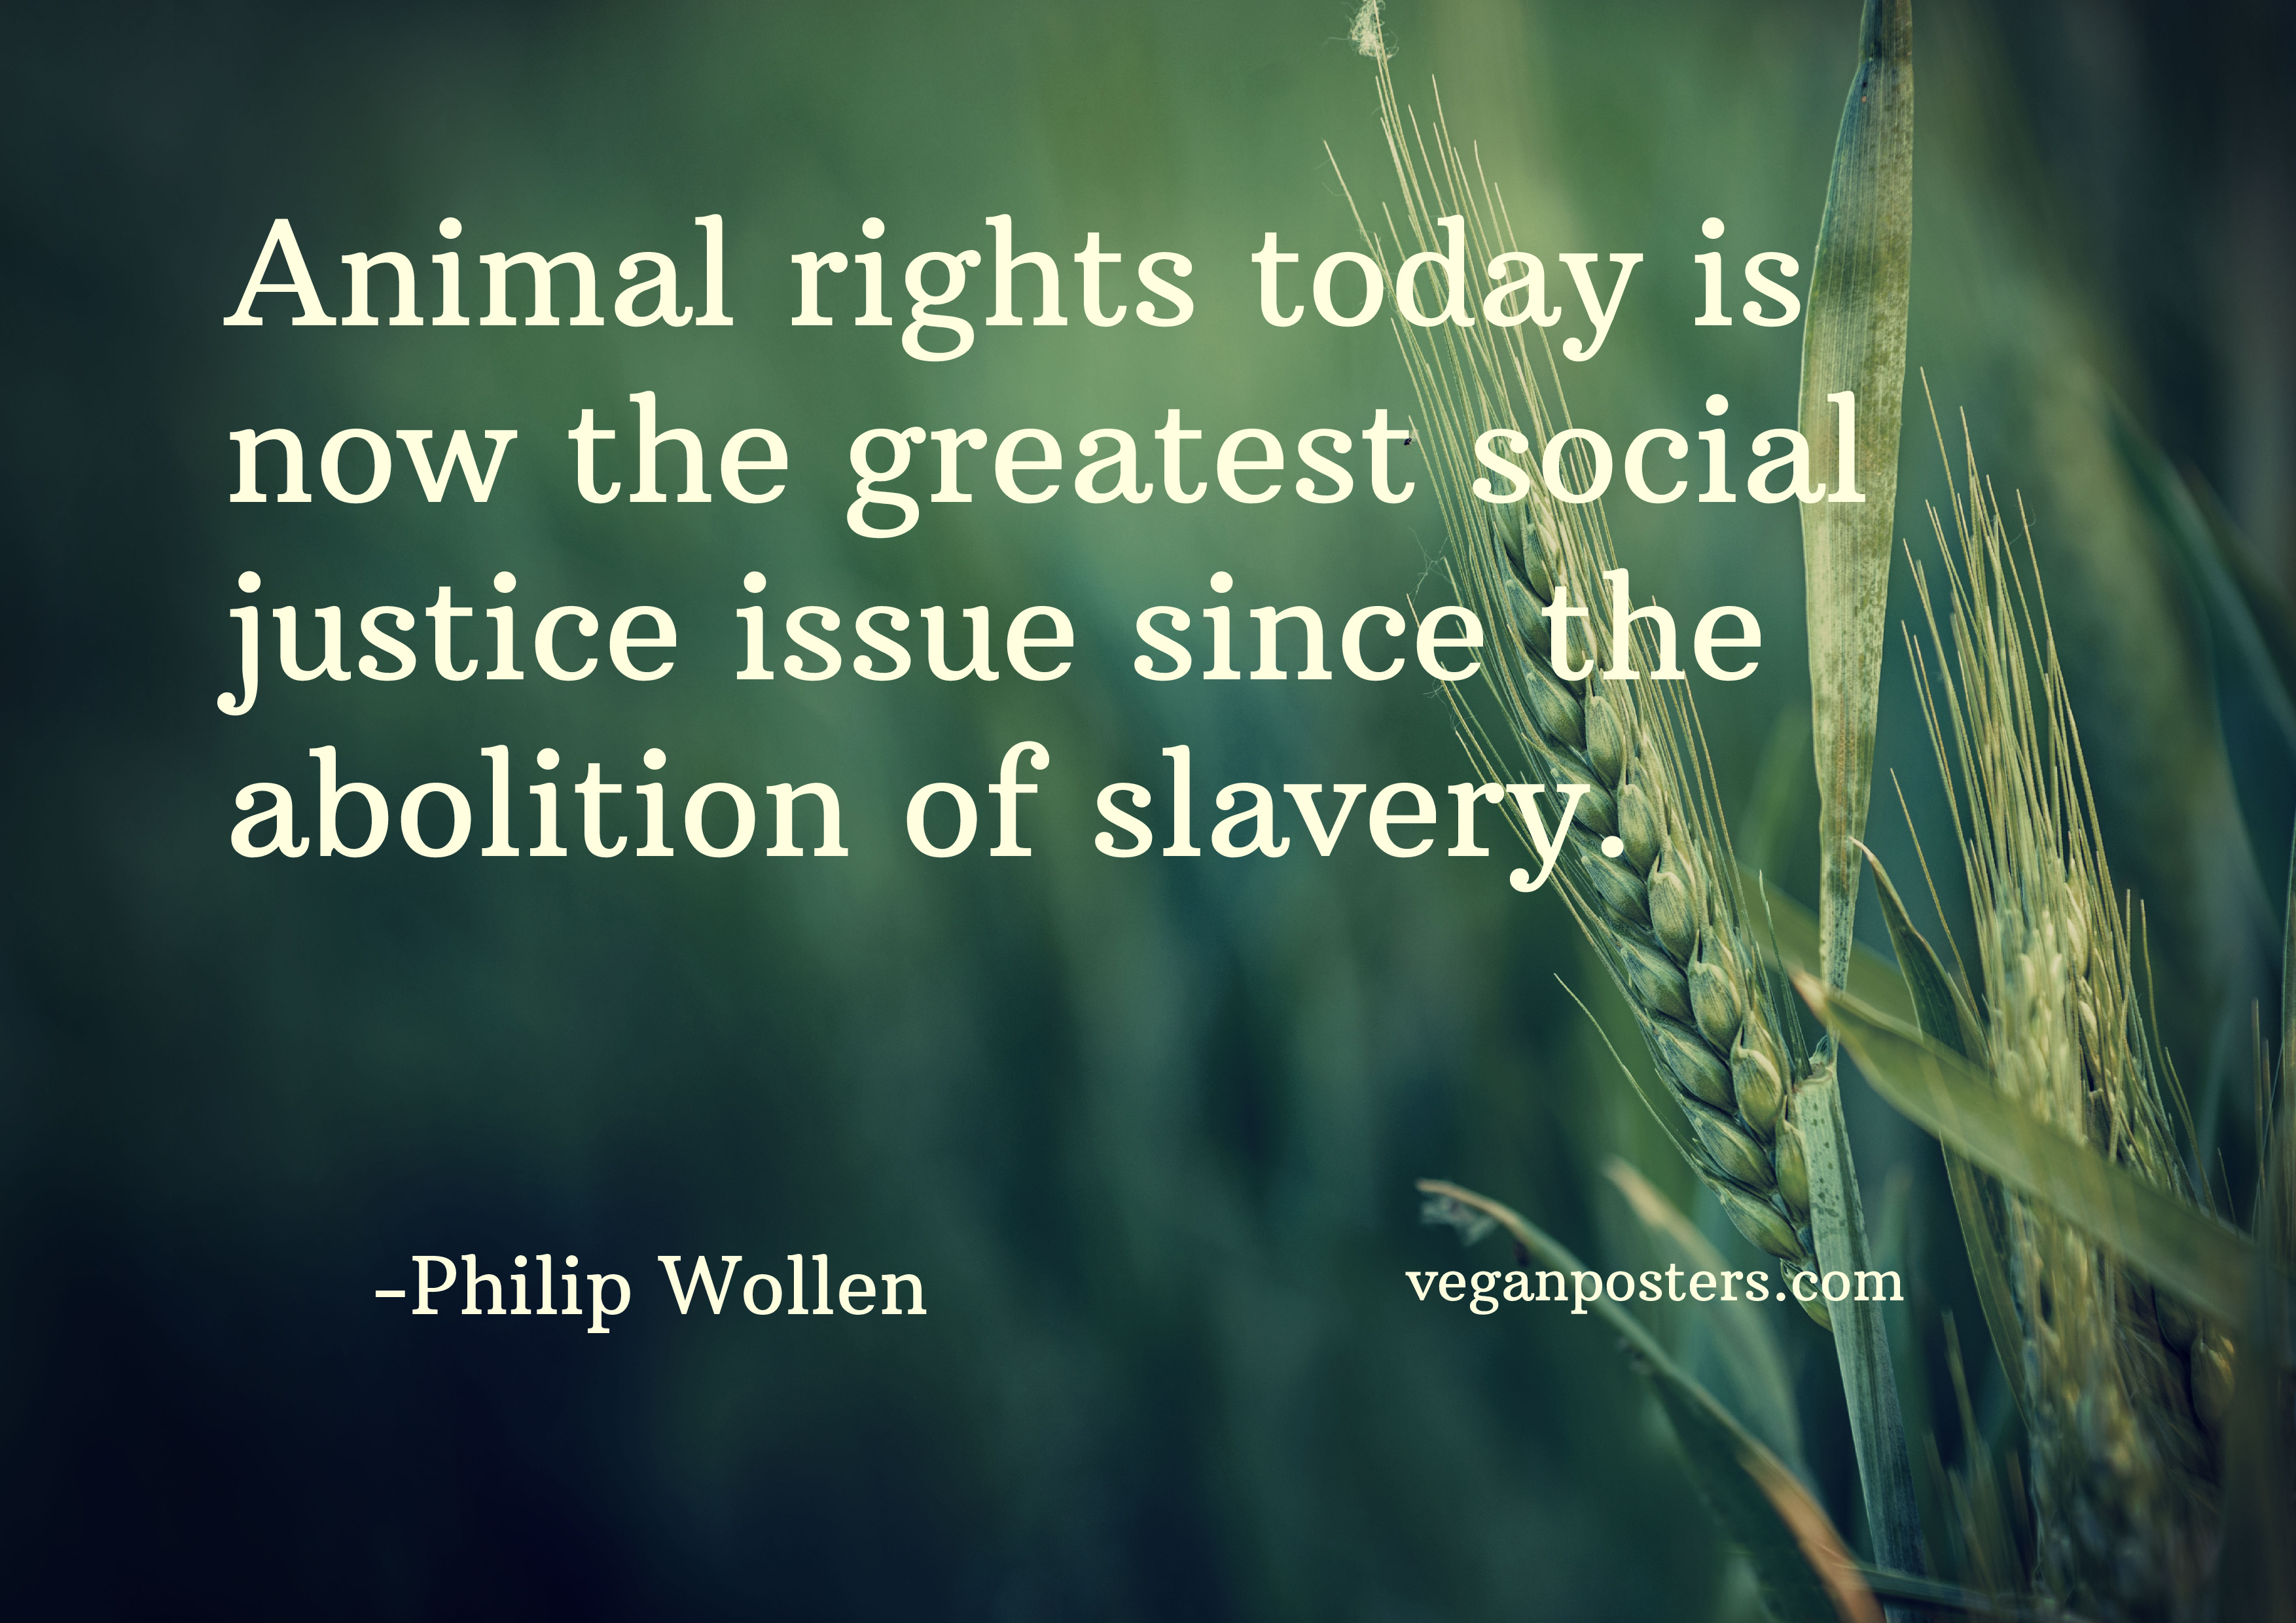 animal rights today is now the greatest social justice issue